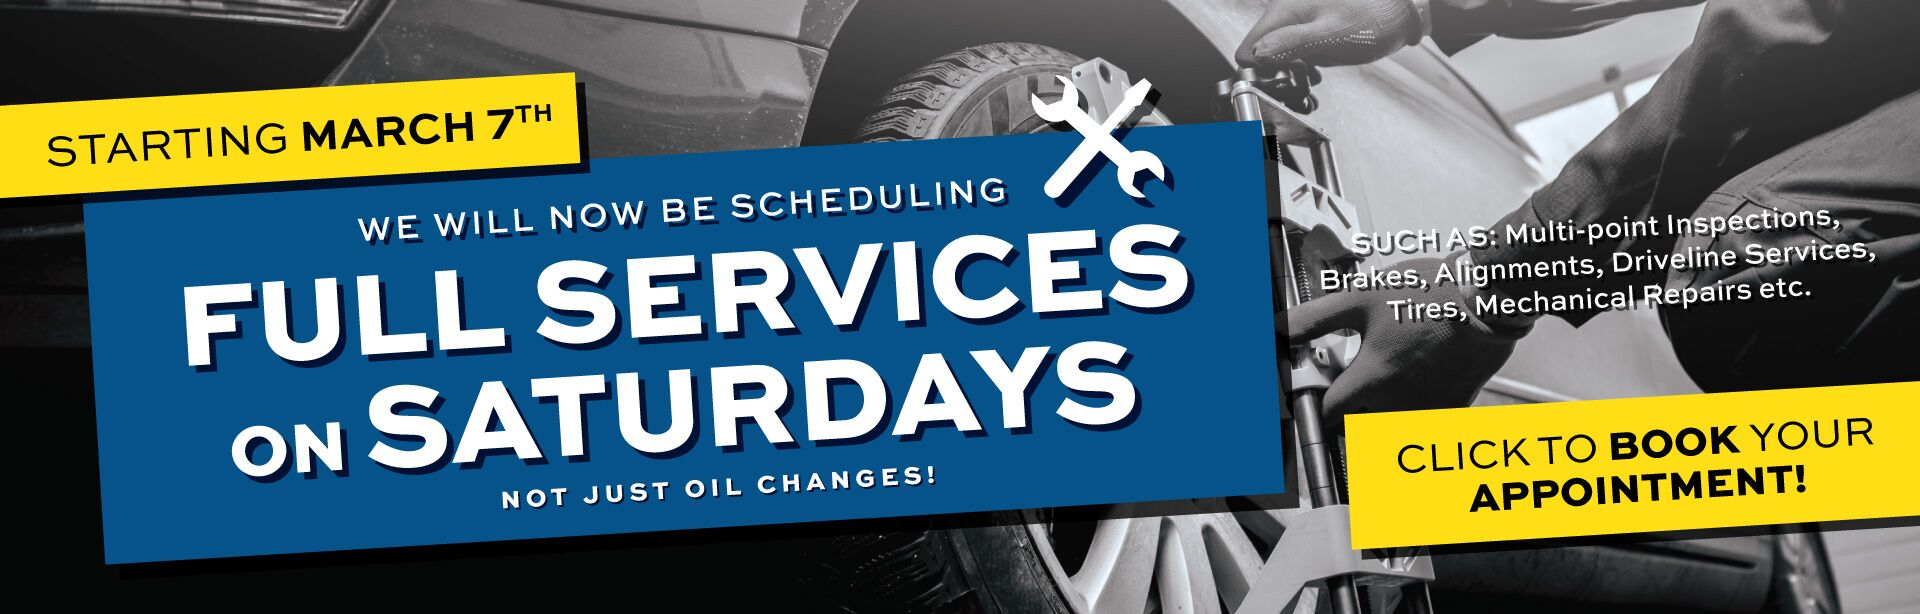 Now Scheduling Full Services On Saturdays